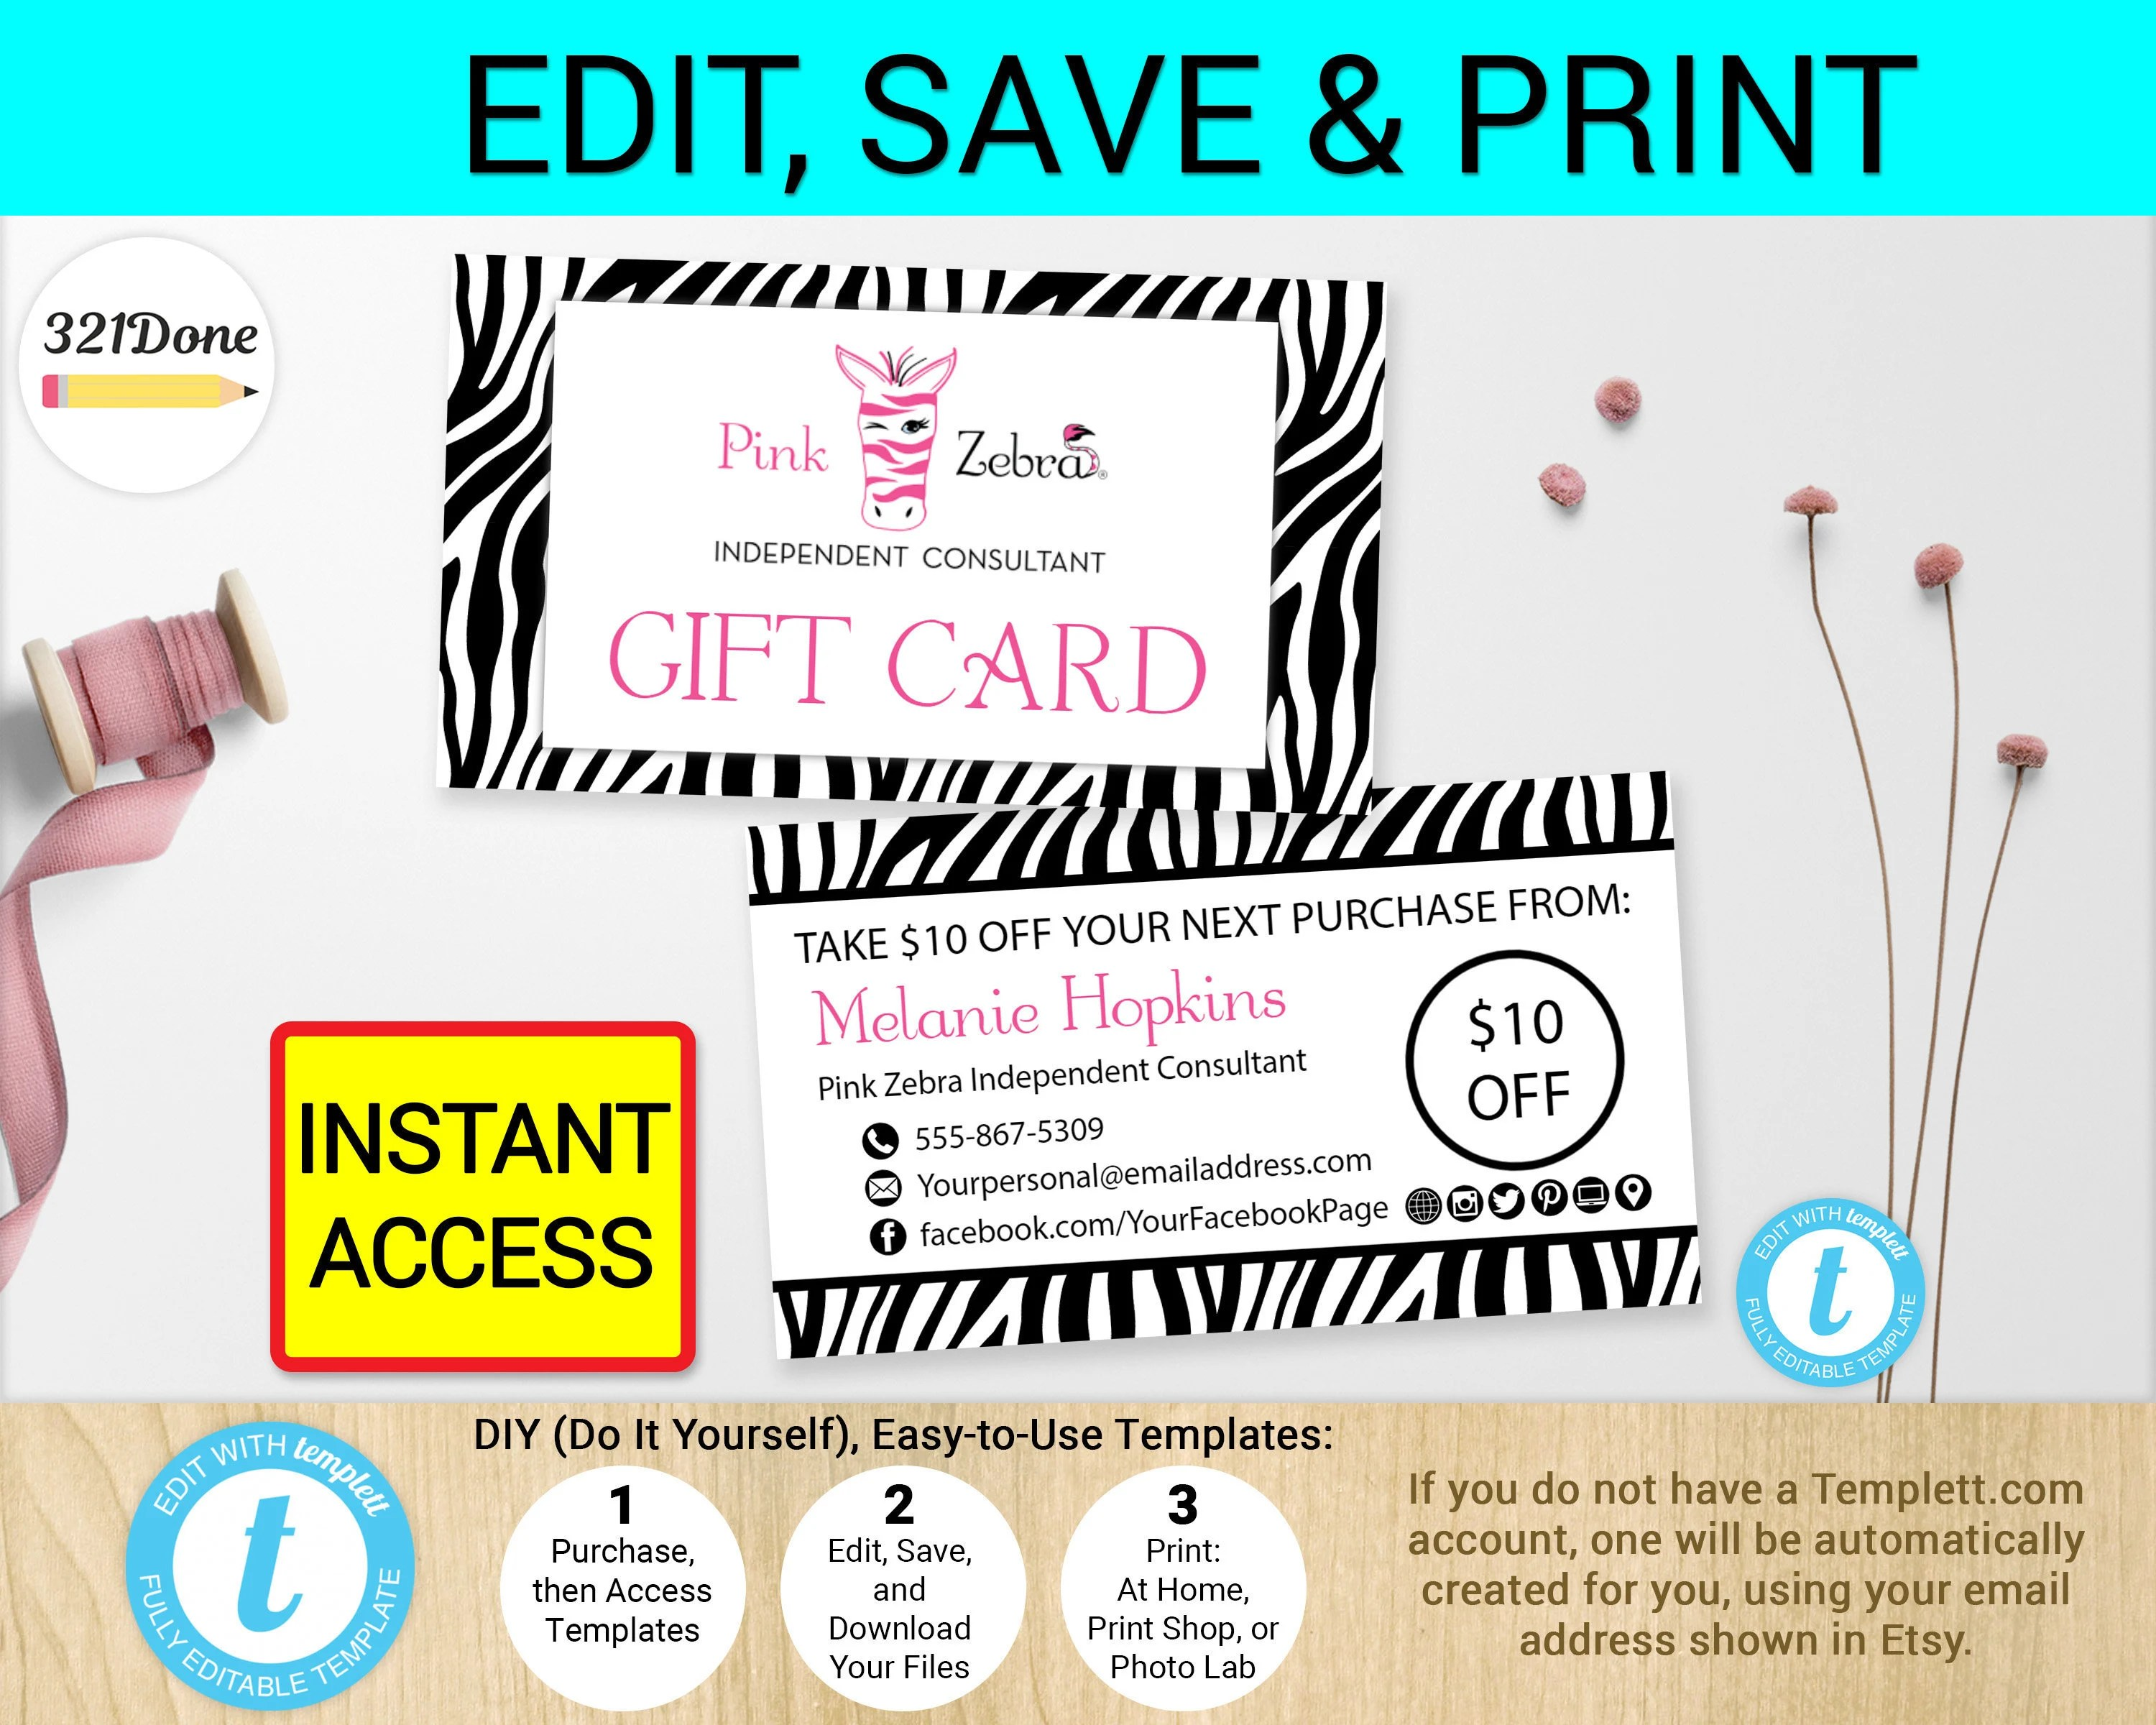 Pink Zebra Gift Card Business Cards Template Printable Digital Etsy - gift cards for business